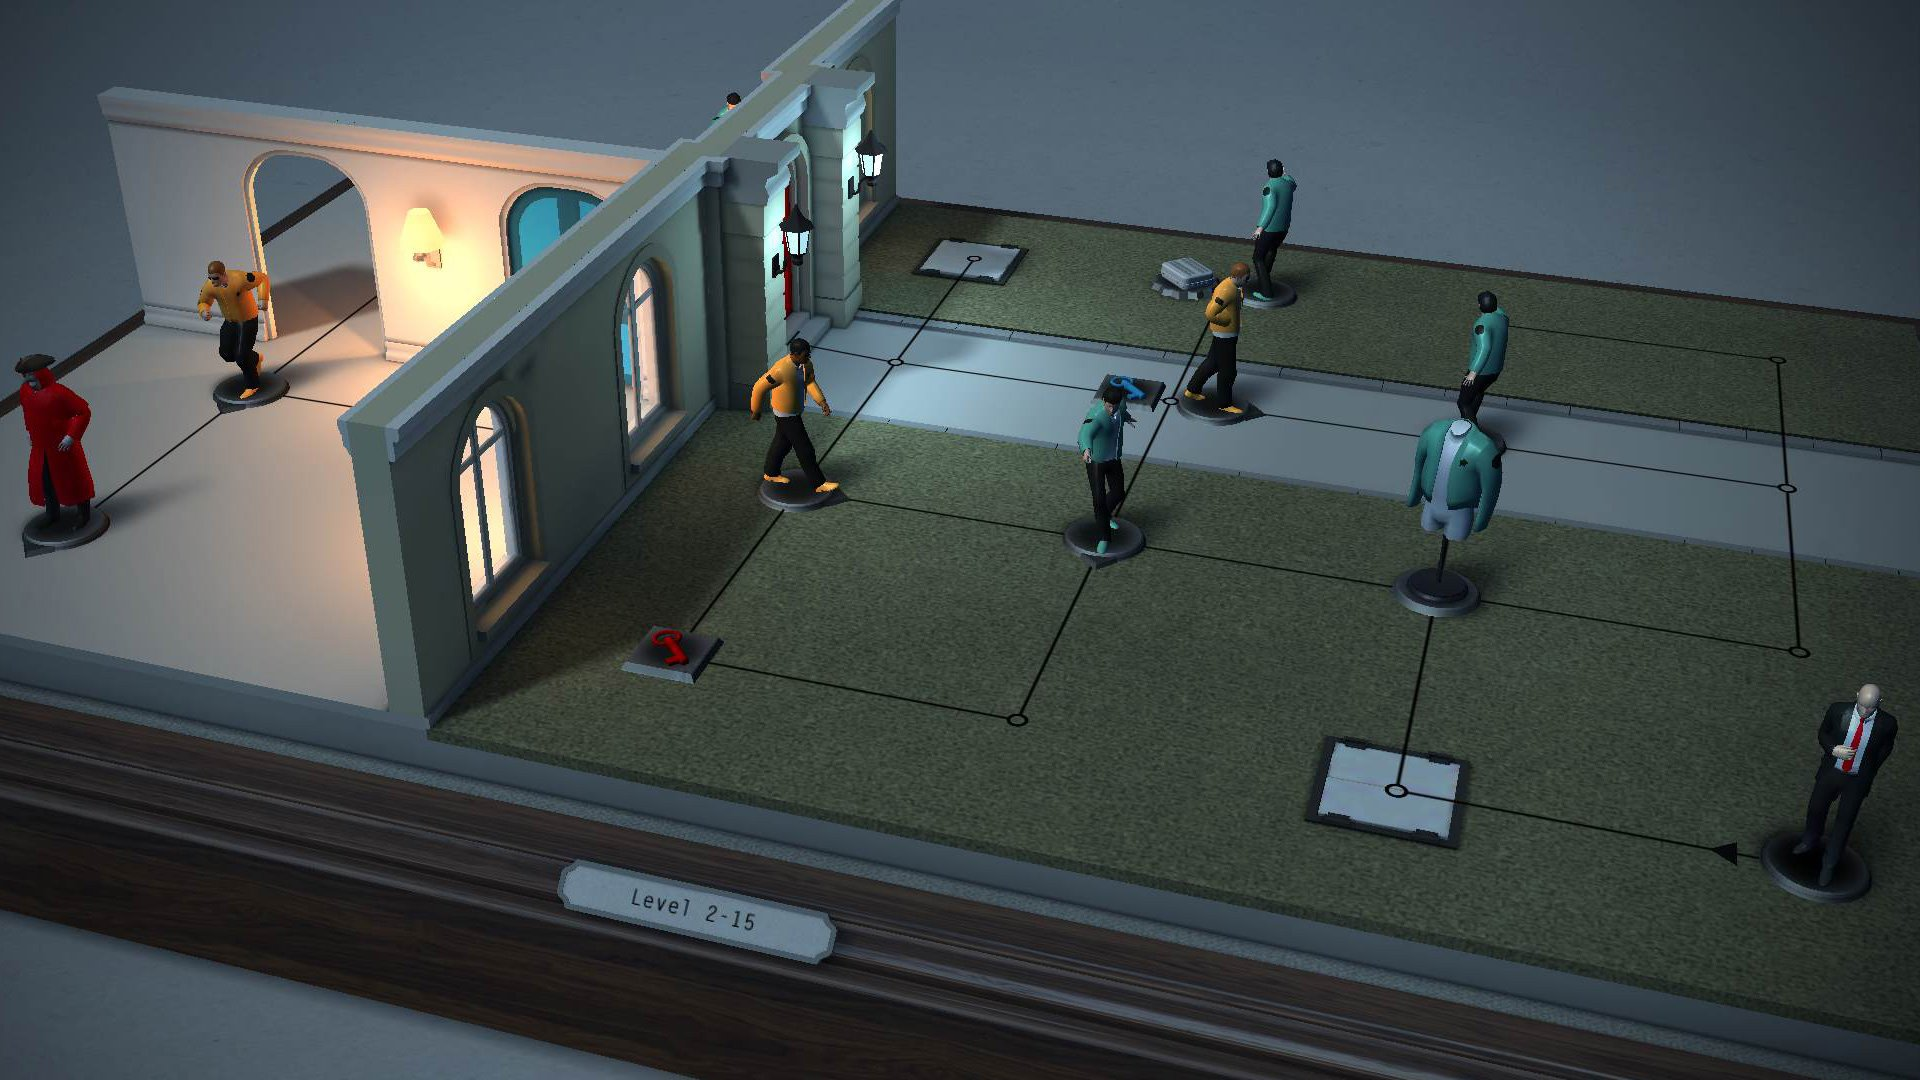 Hitman GO is free on Android and iOS